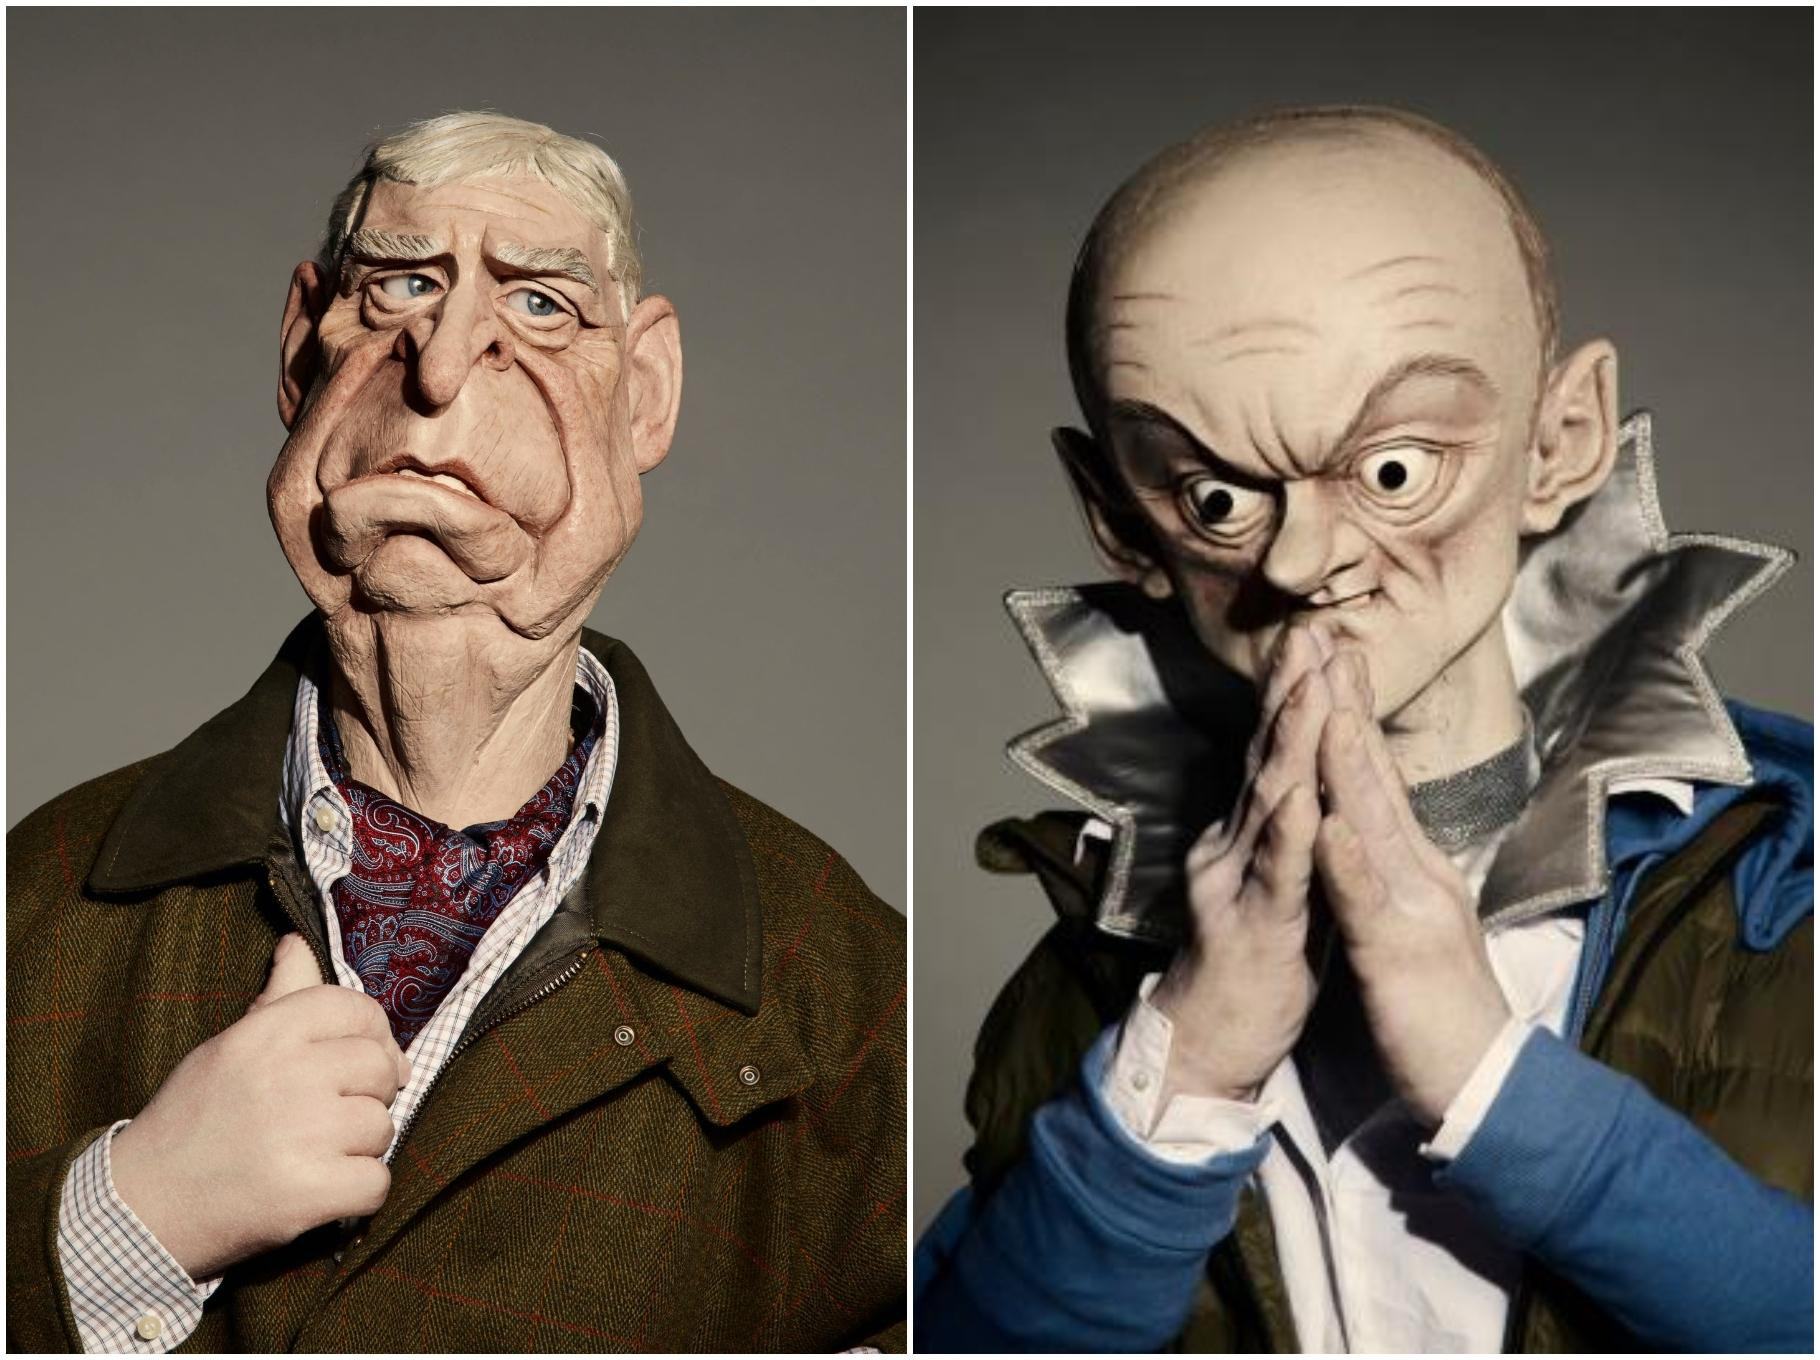 Spitting Image Dominic Cummings And Prince Andrew Reimagined As